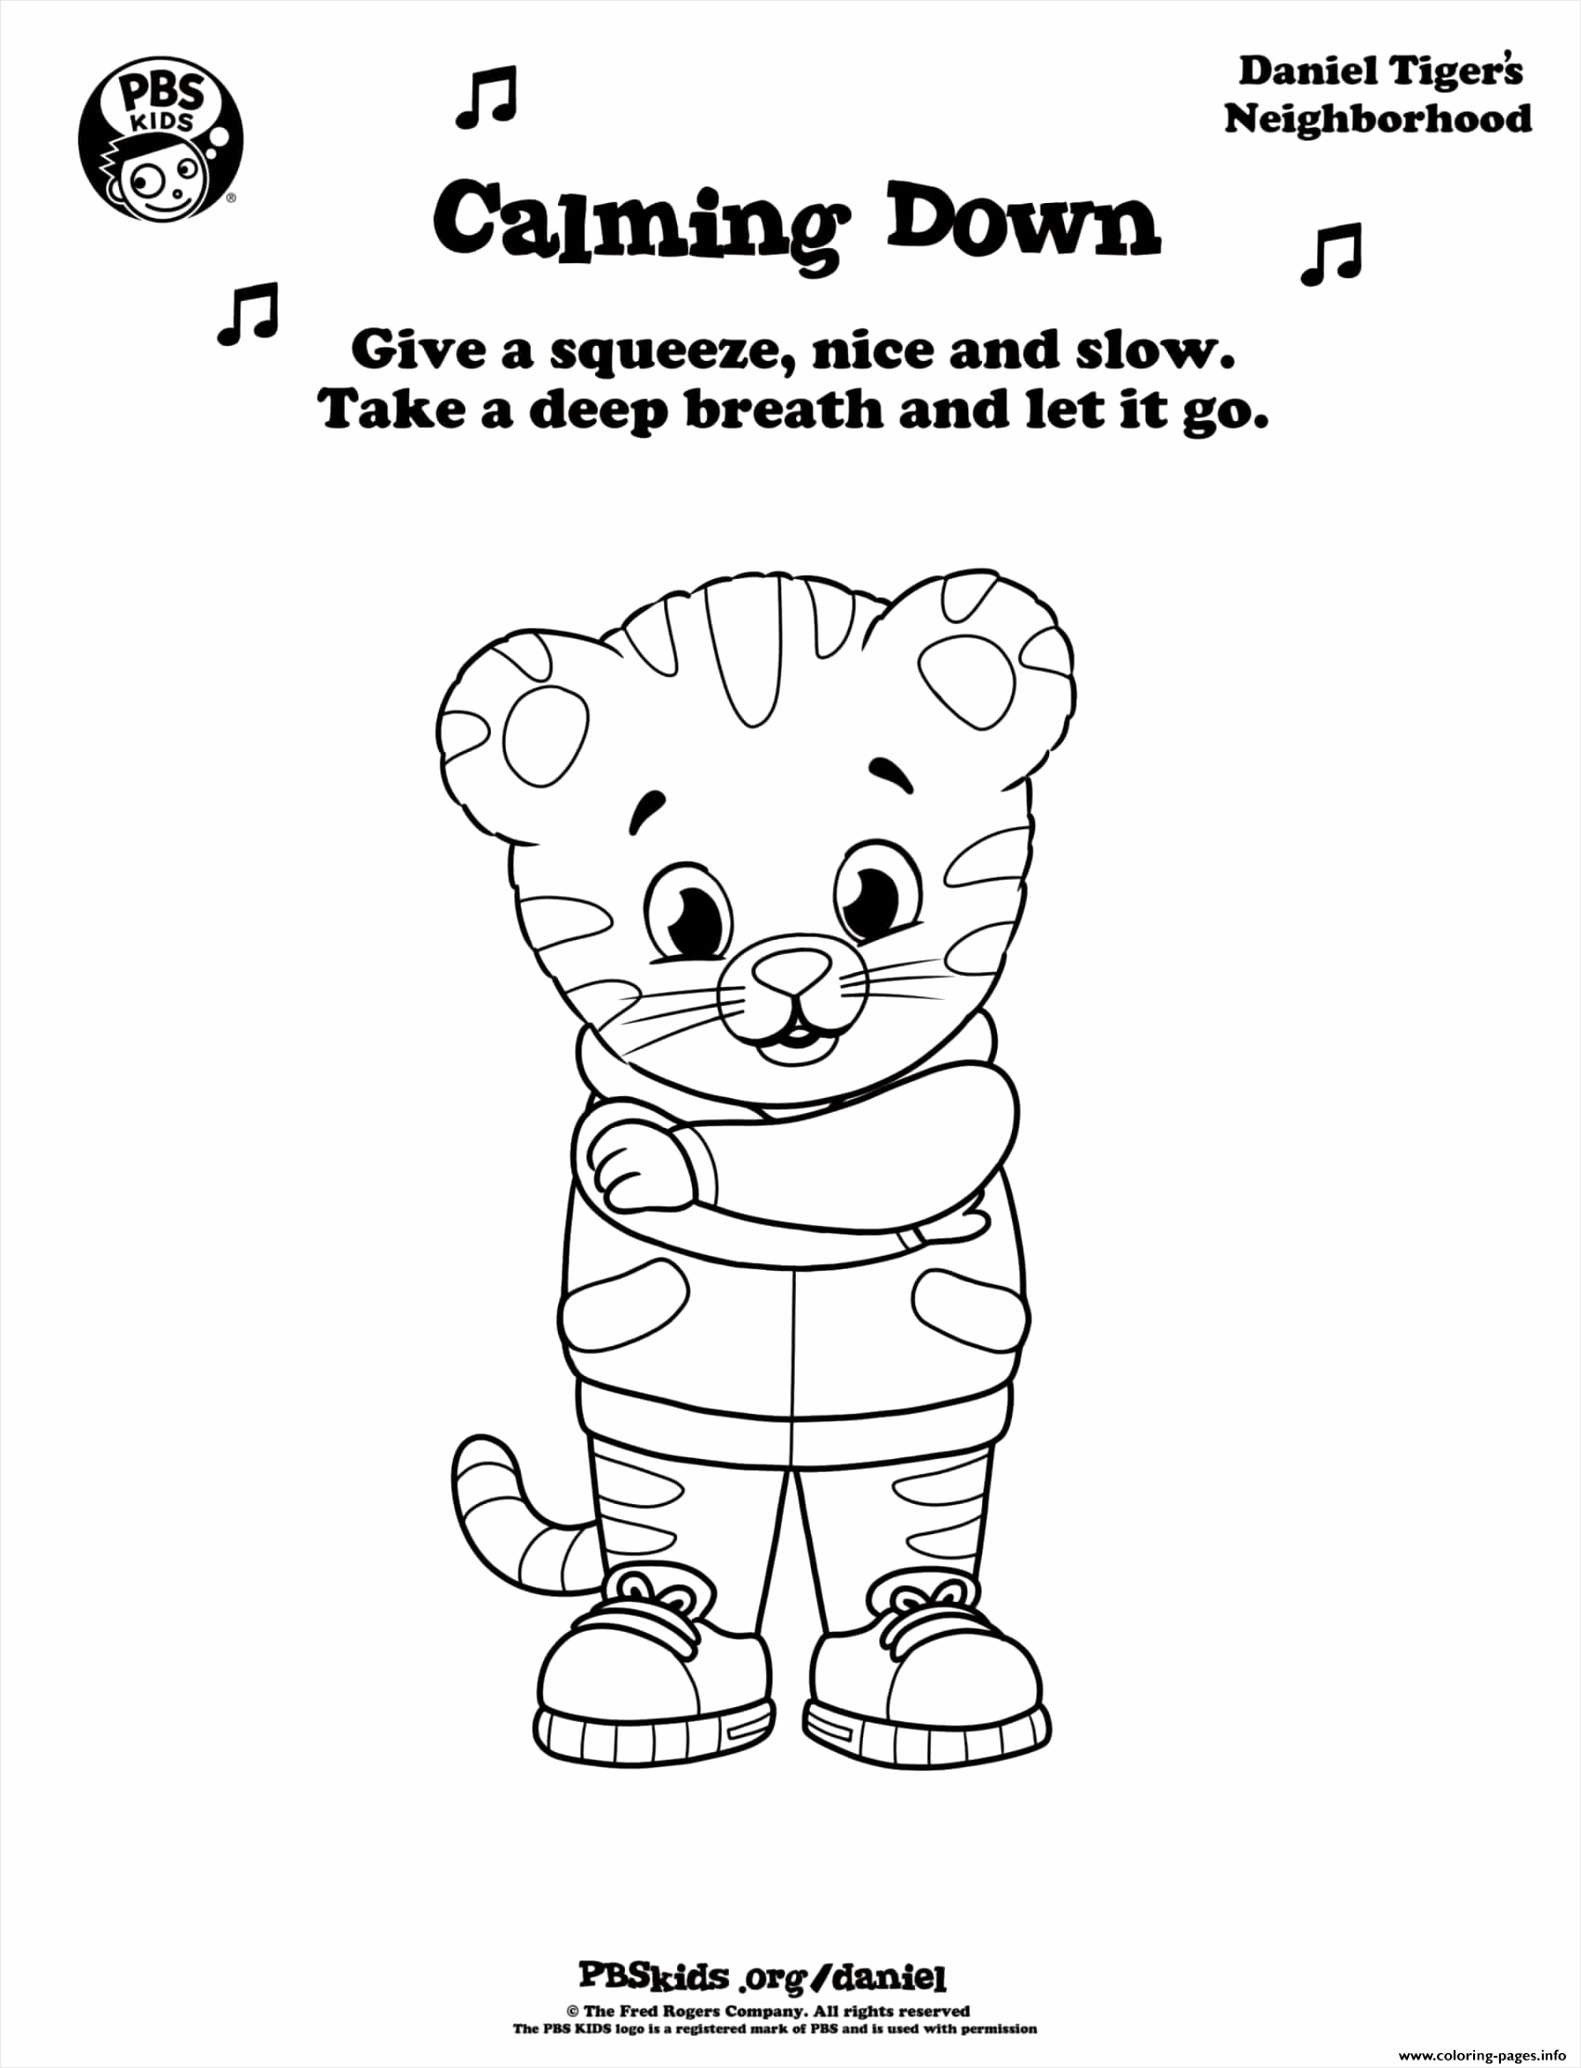 danieler coloring photo ideas printable pictures of sheets for kids twuru